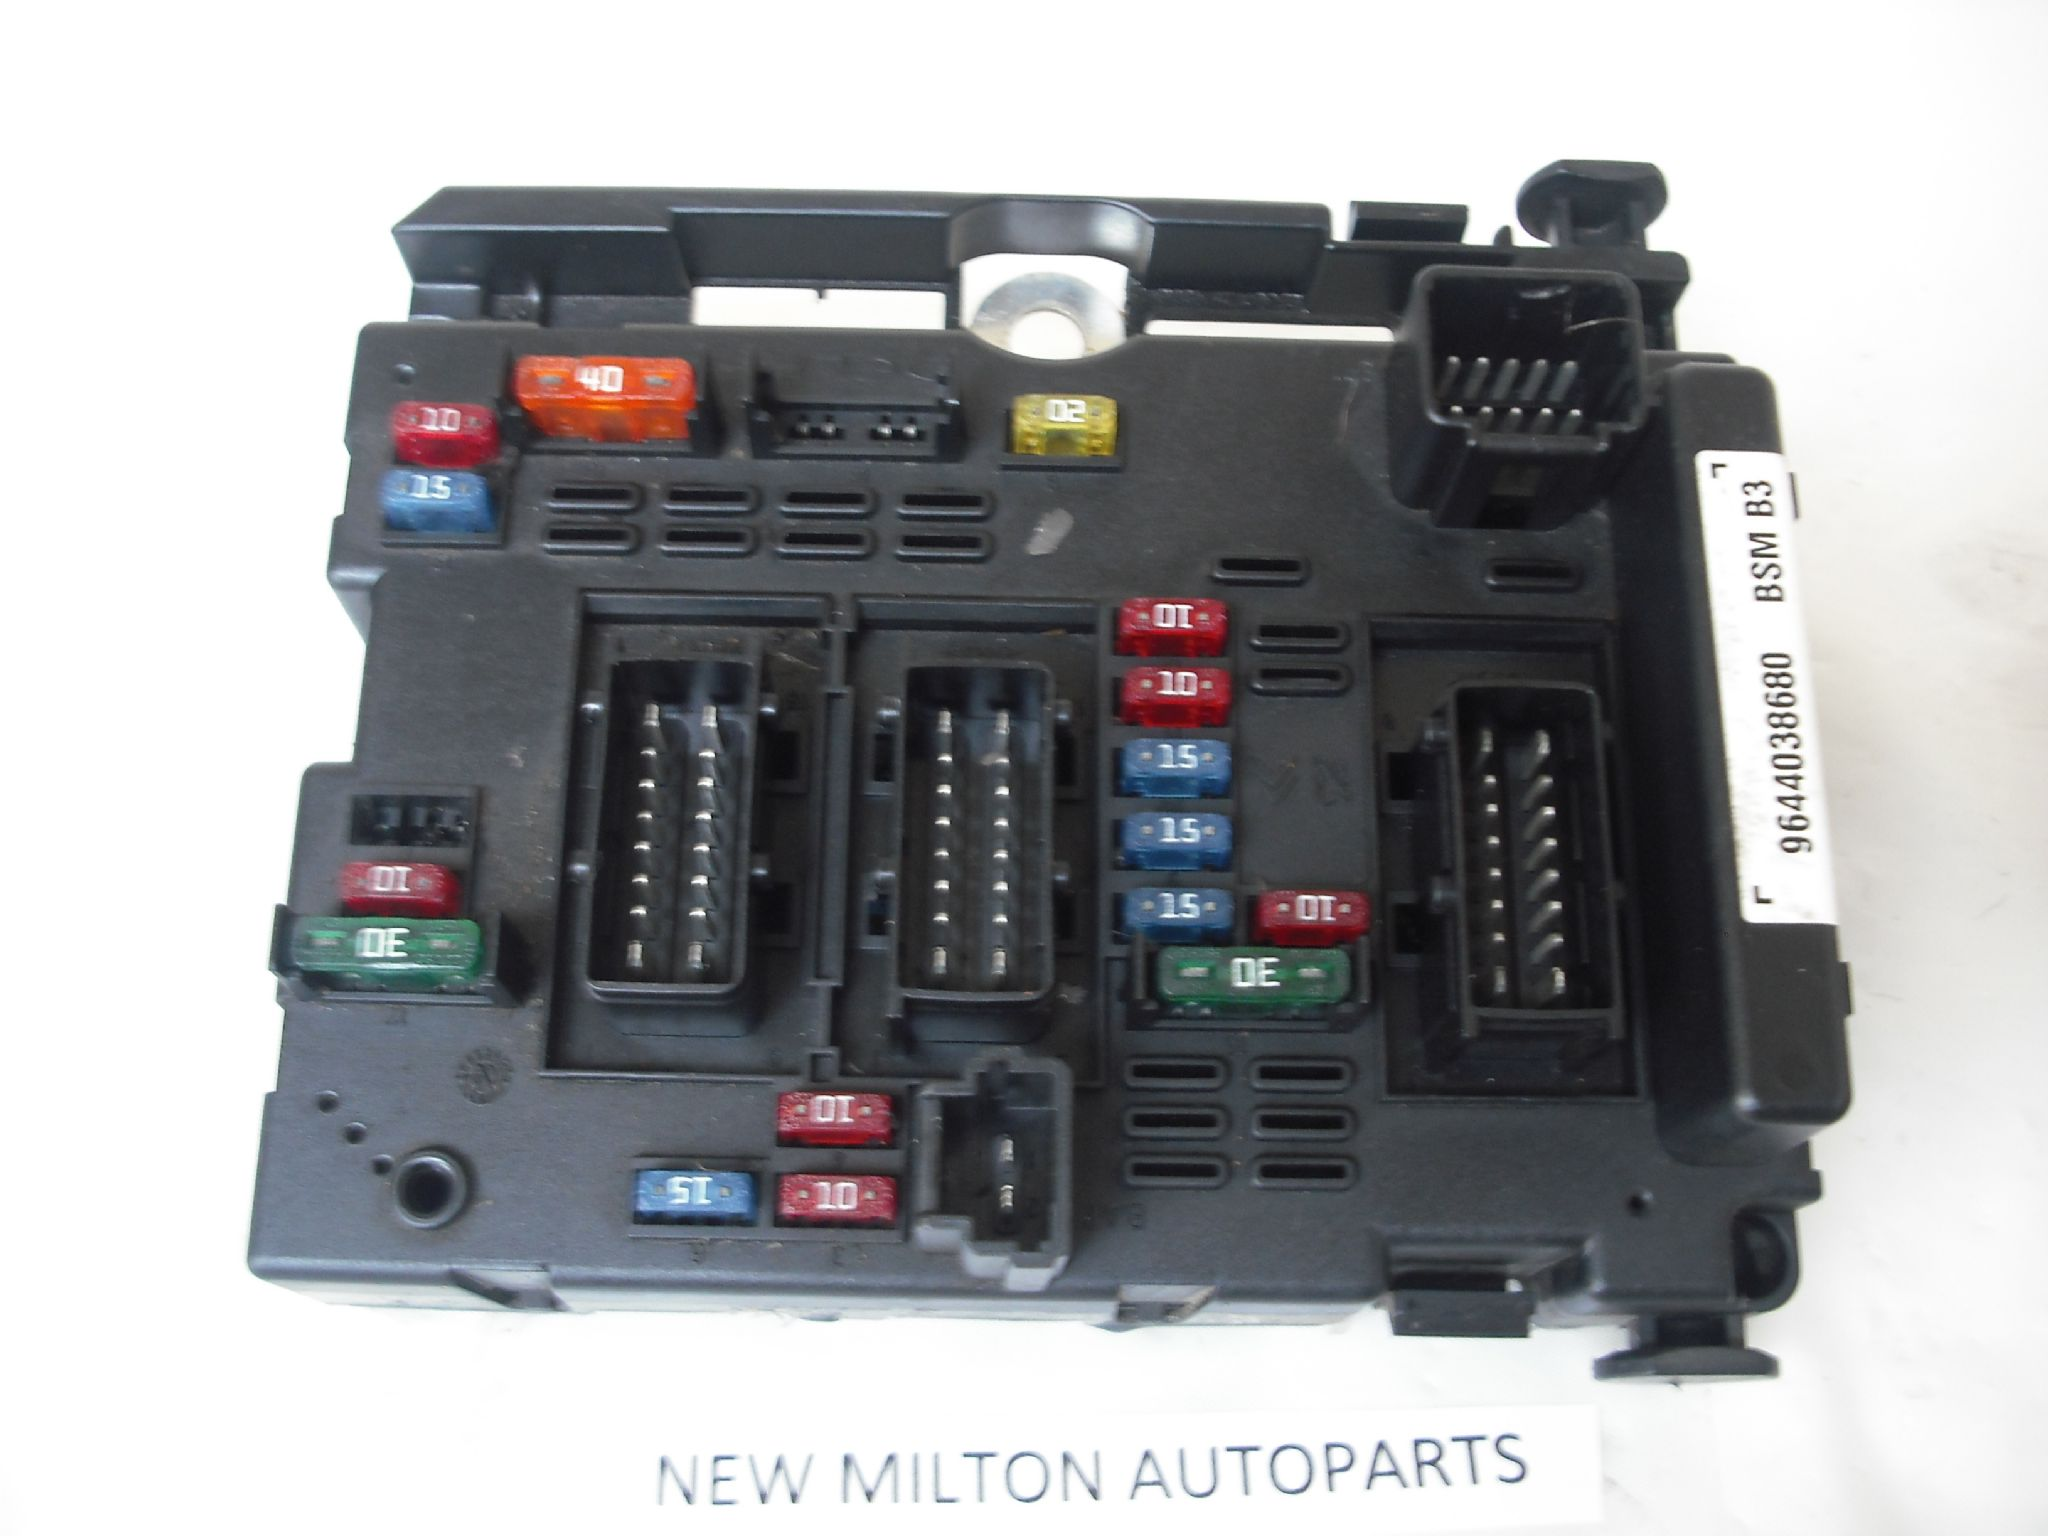 peugeot 307 partner citroen berlingo fuse box controller 9644038680 bsm b3 ........................sorry out of stock 5843 p peugeot 307 partner citroen berlingo fuse box controller citroen berlingo 2003 fuse box at creativeand.co